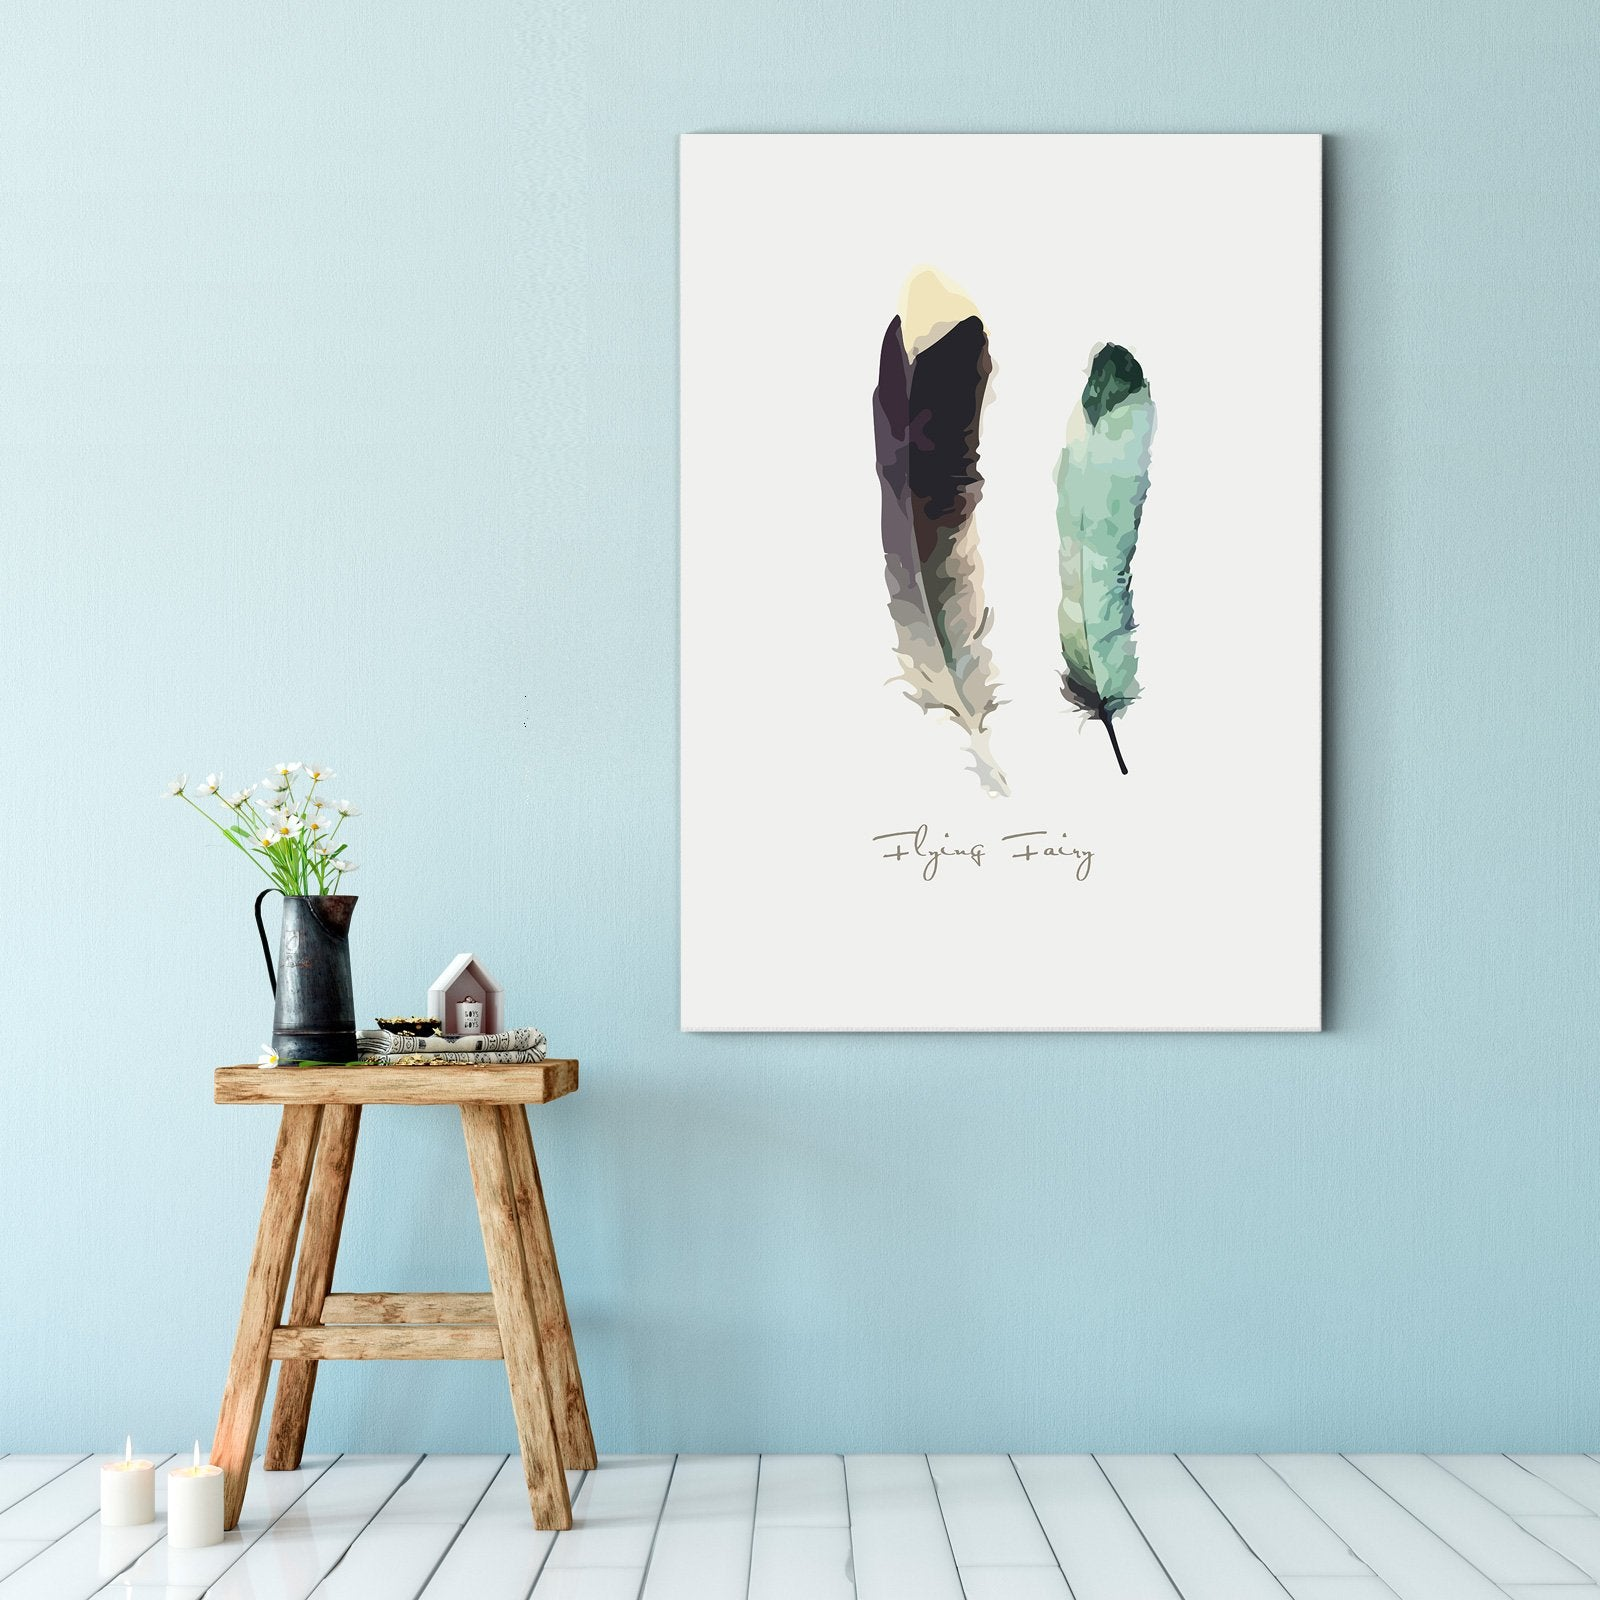 Contracted and lovely wind - abstract adornment draws - sitting room - feather